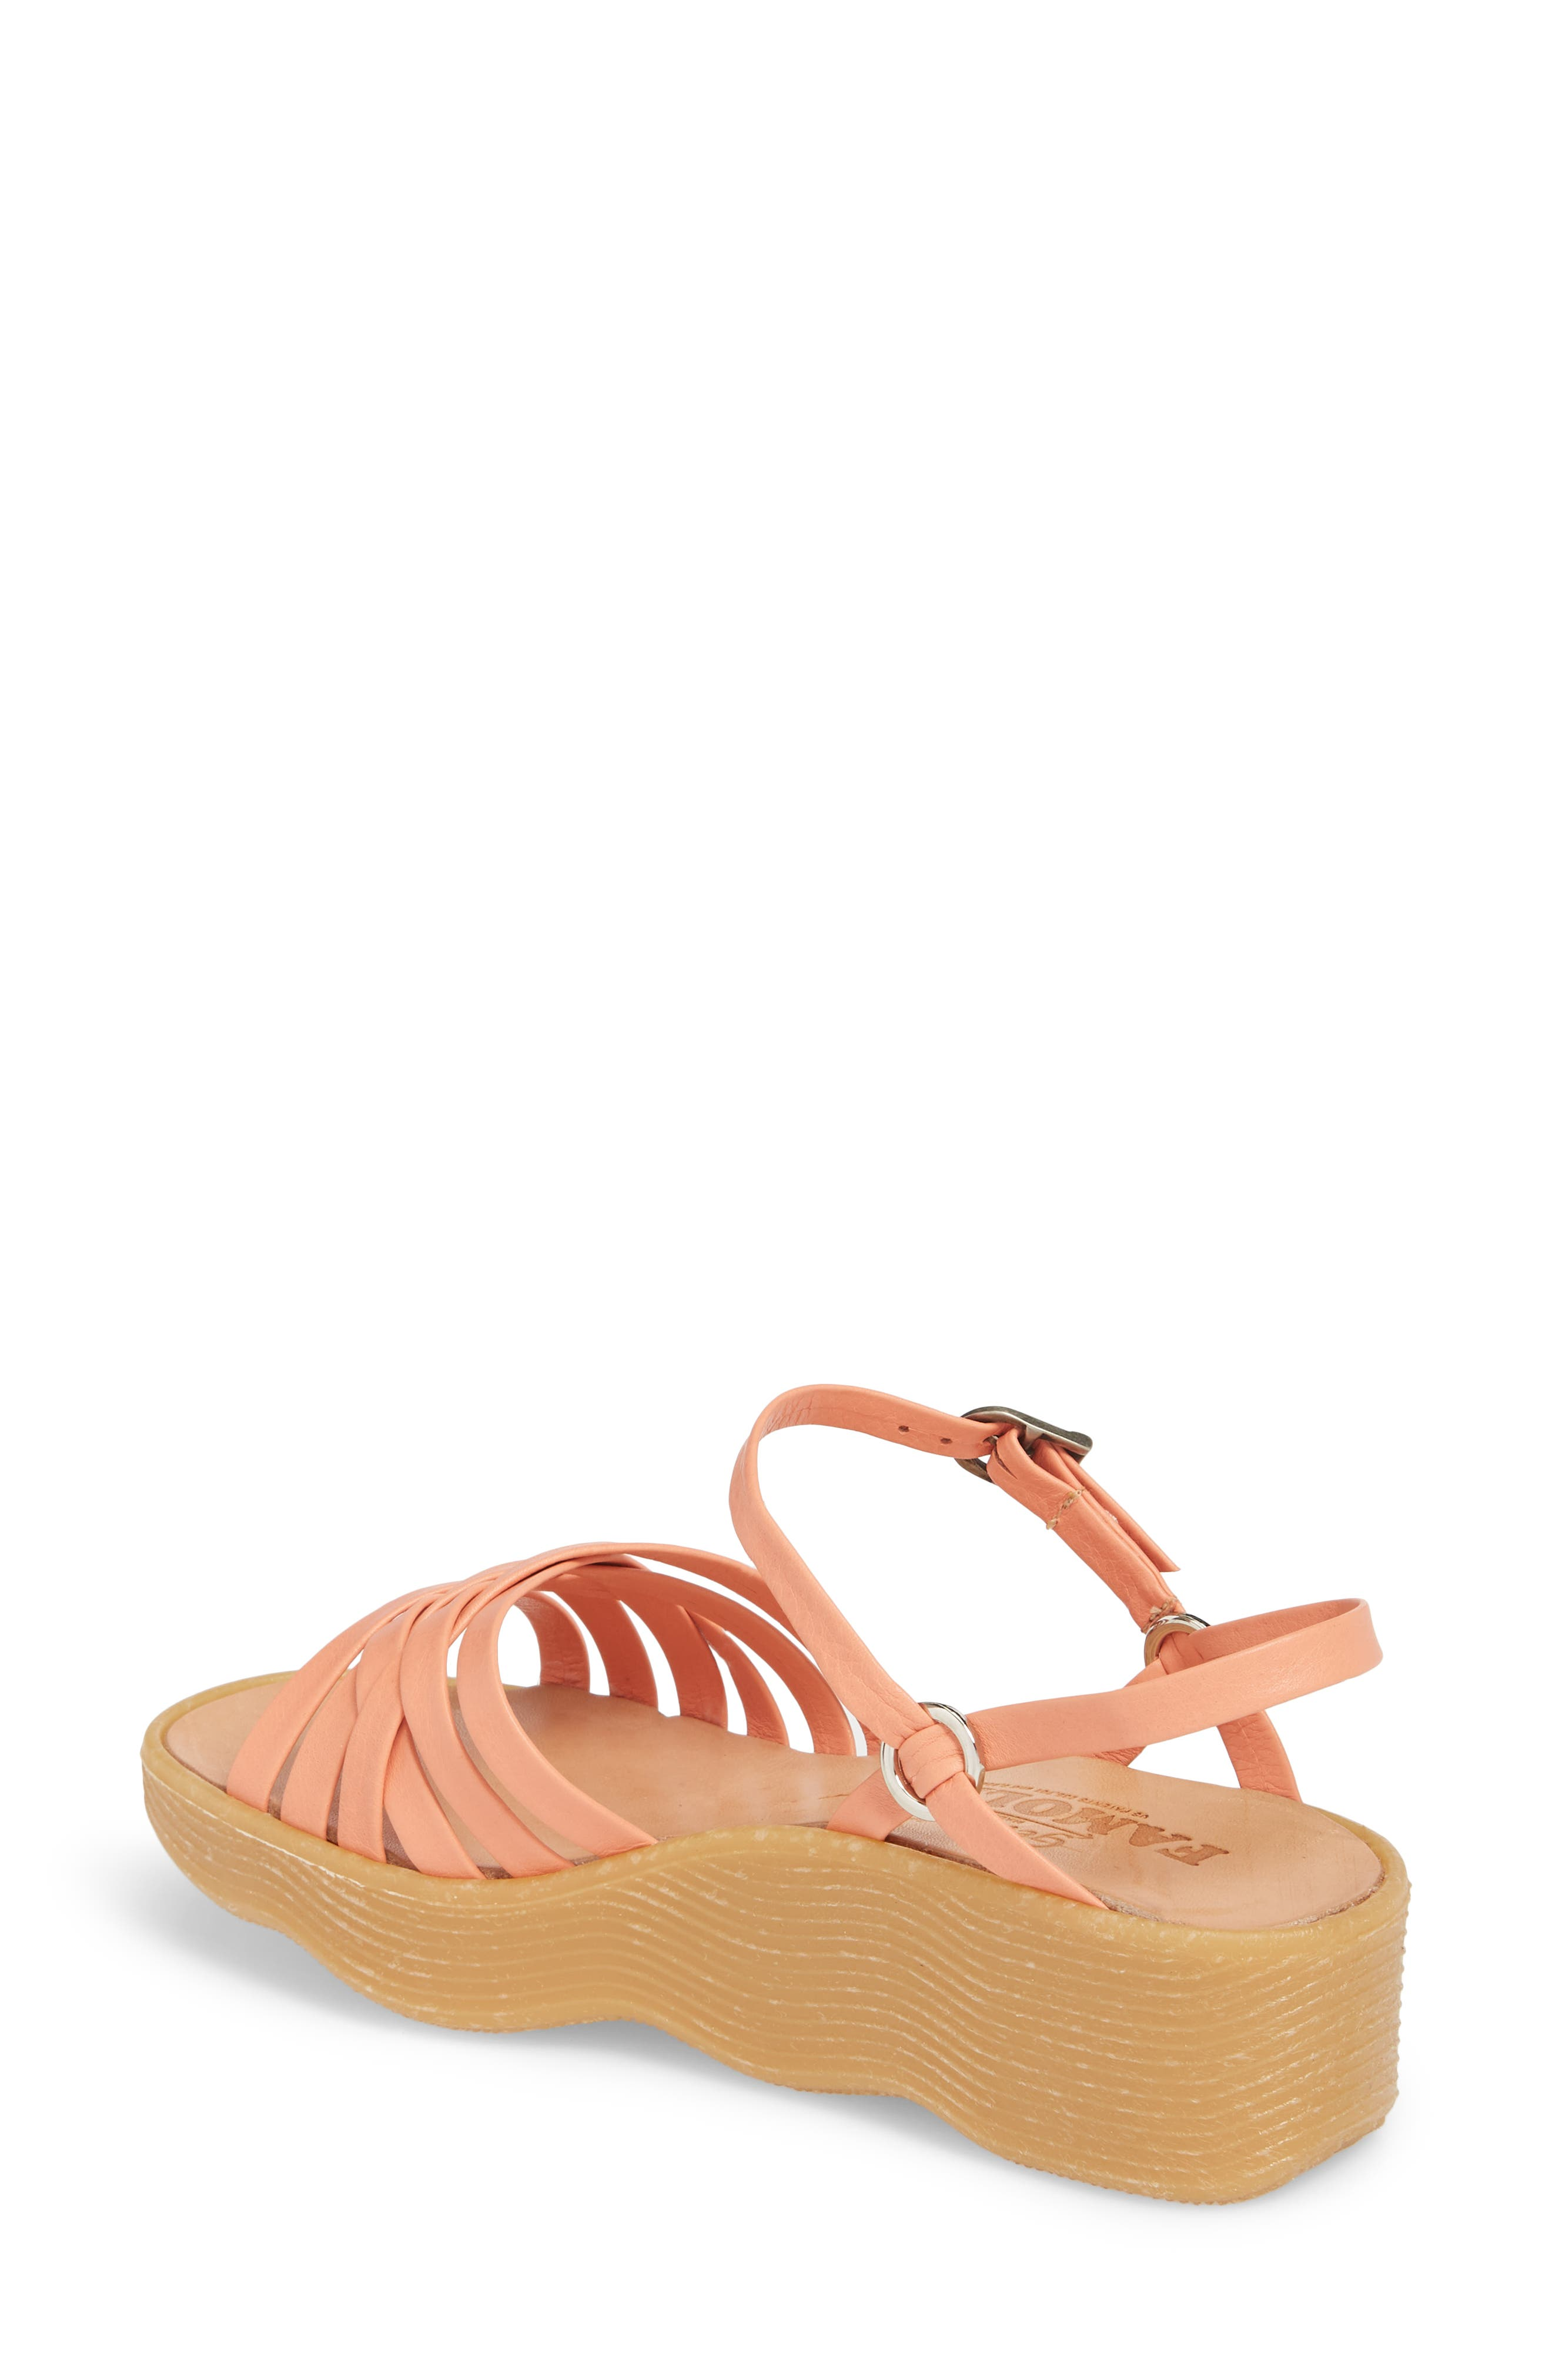 Strappy Camper Sandal,                             Alternate thumbnail 2, color,                             Salmon Leather